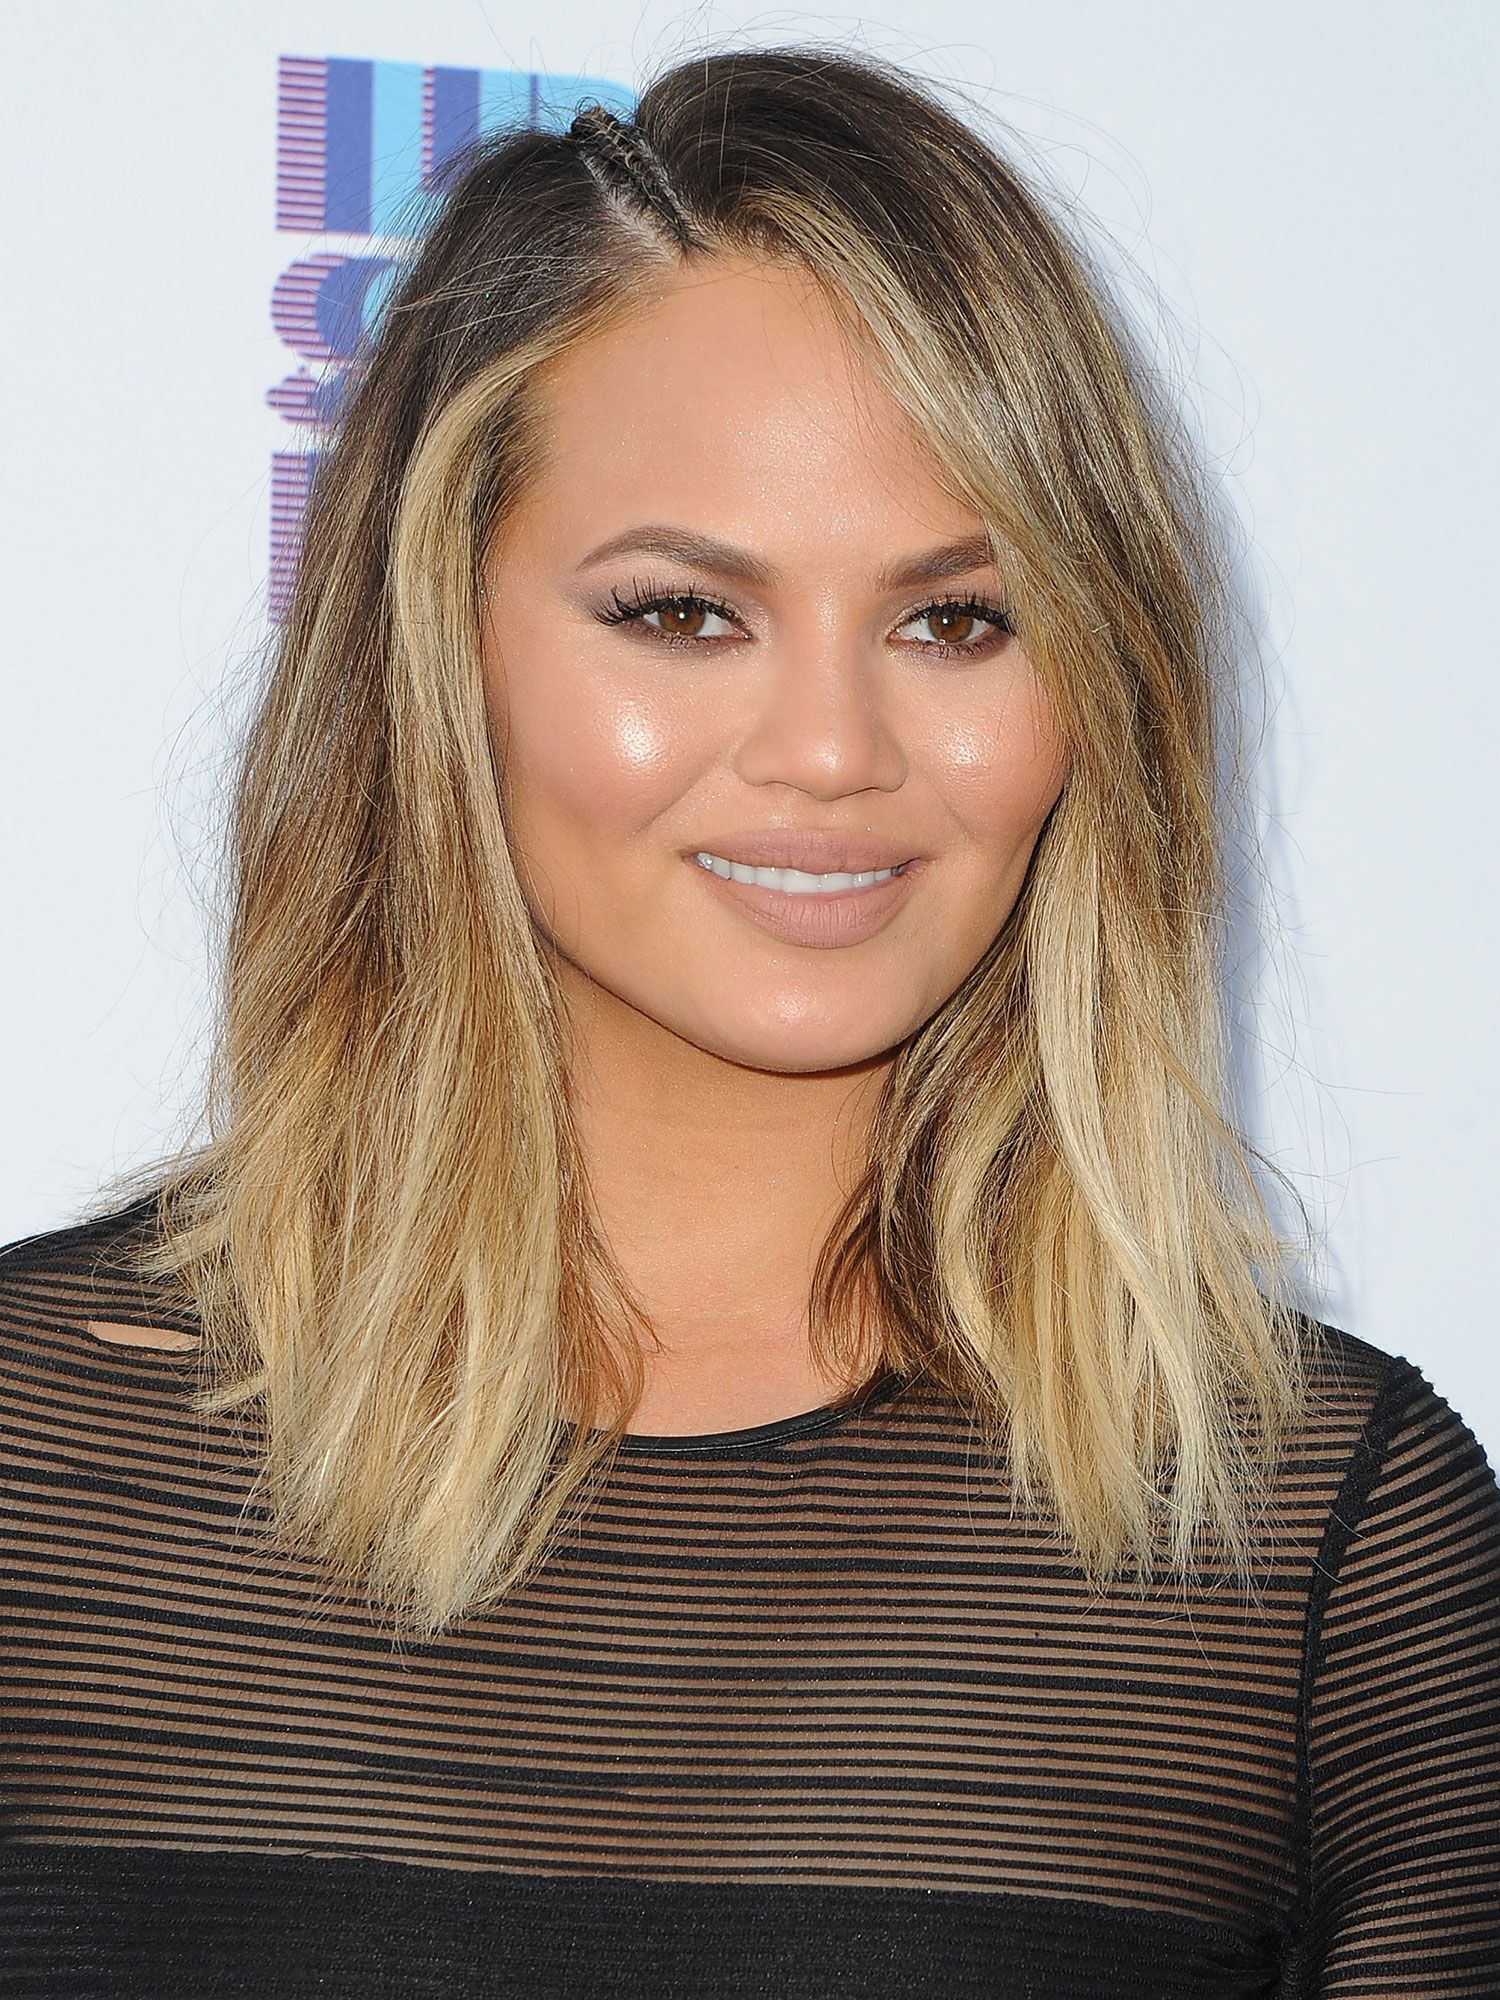 39++ What is the best hairstyle for oval face ideas in 2021